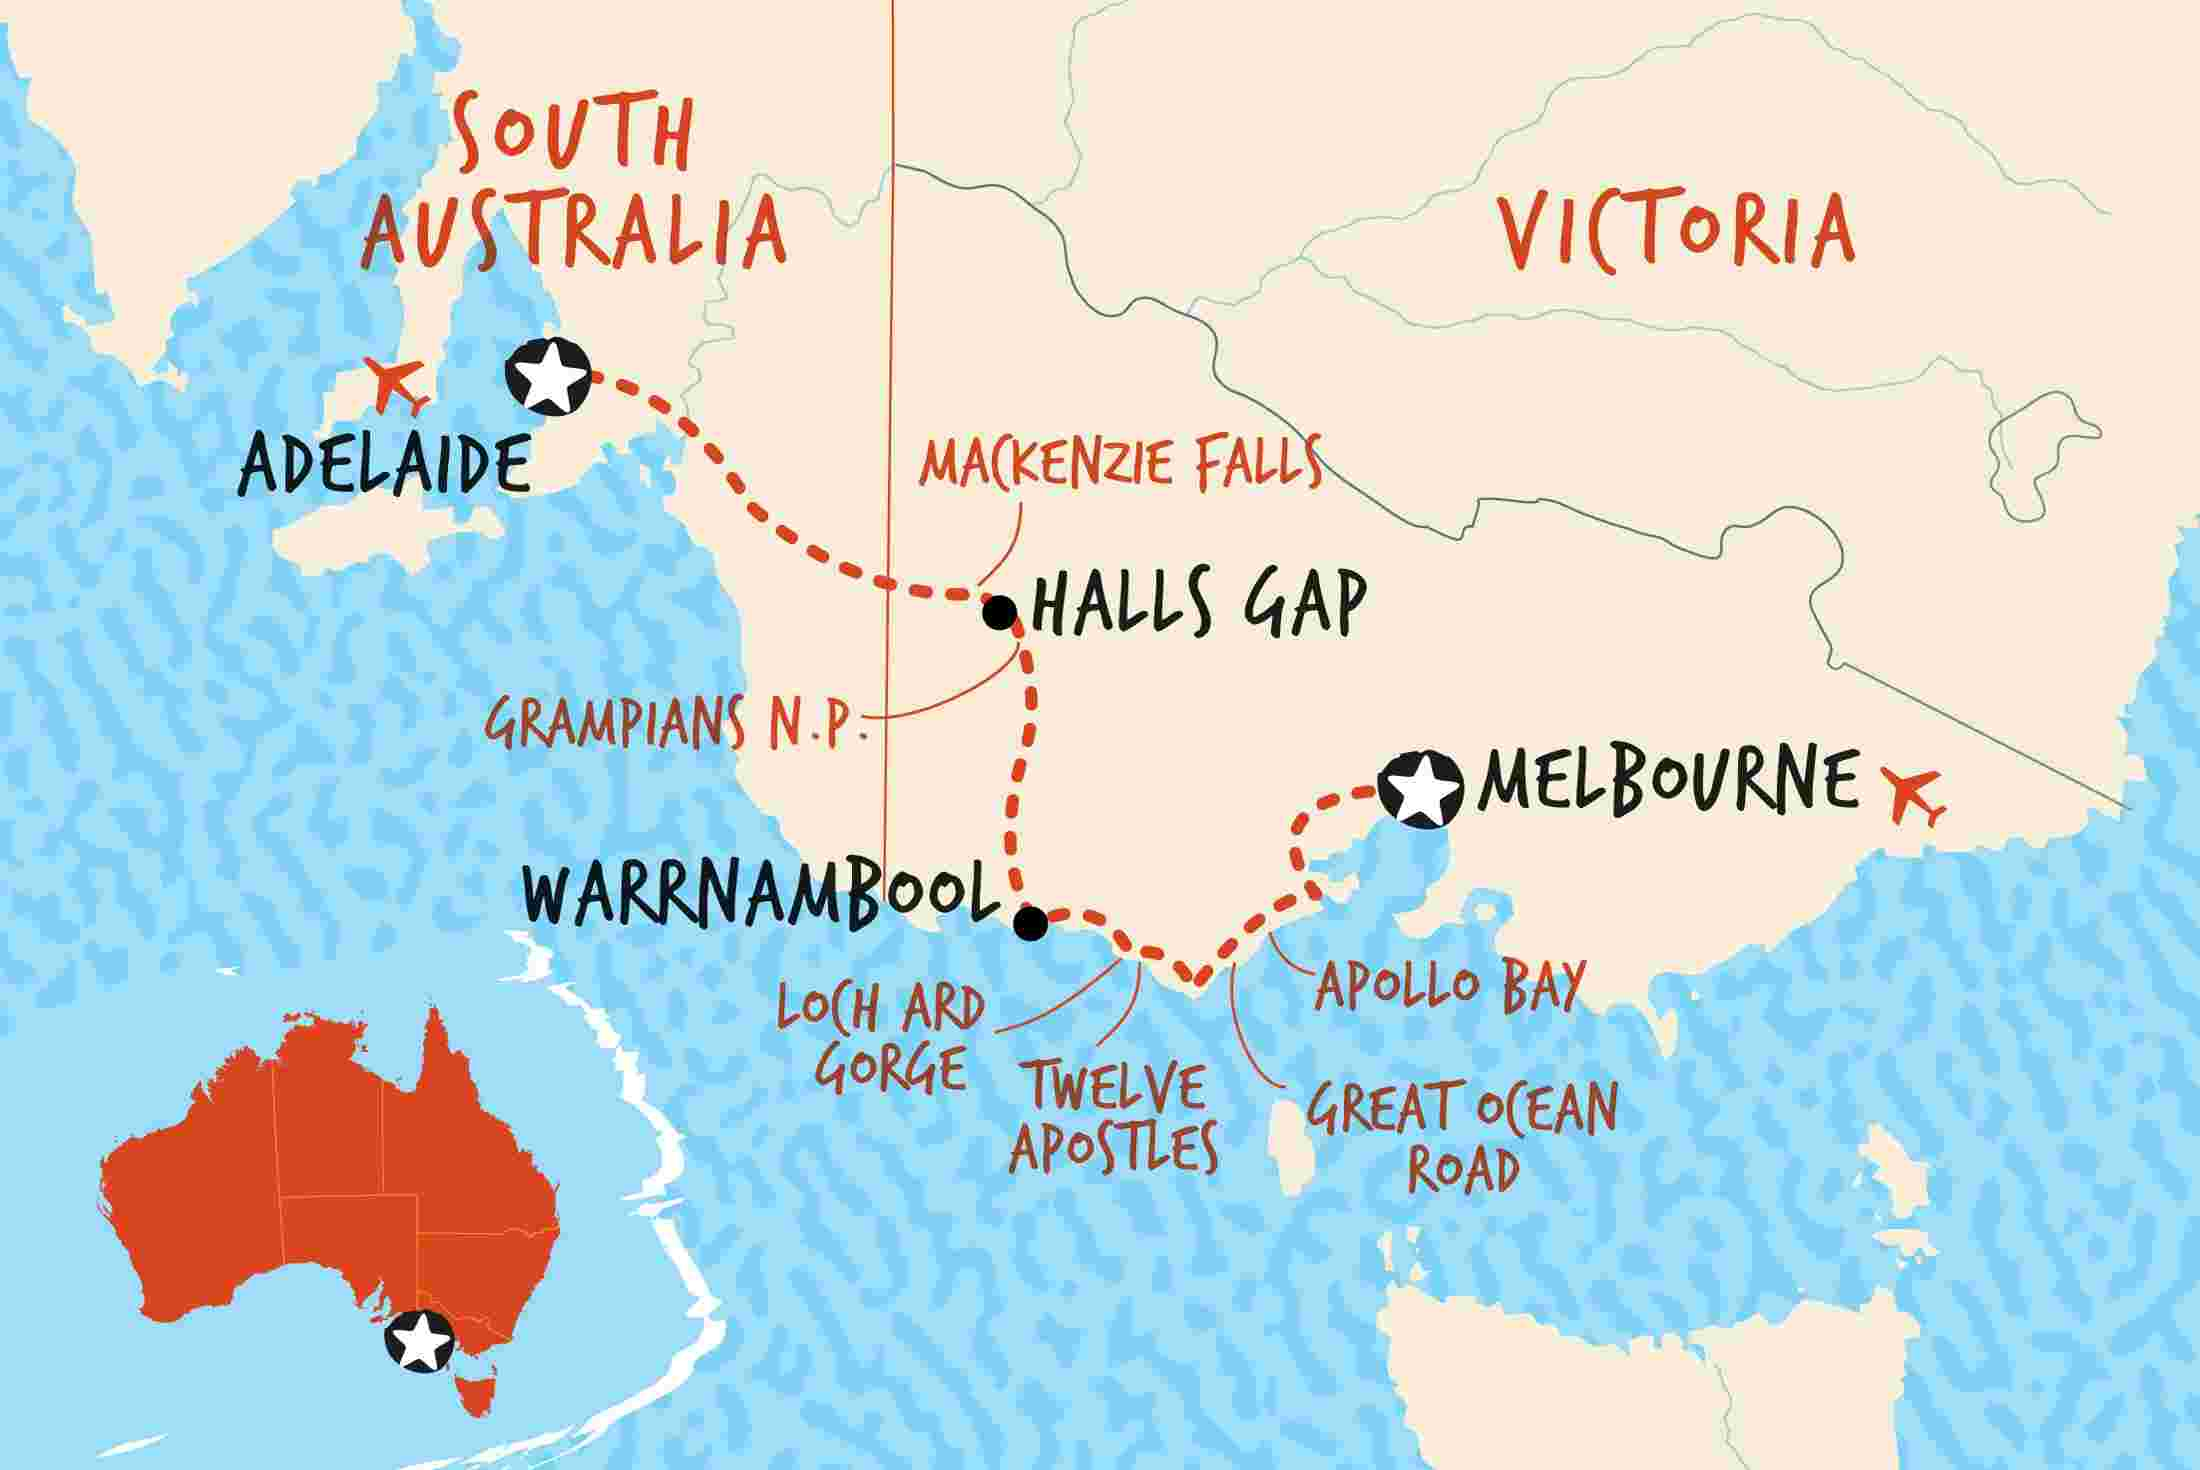 Melbourne Australia World Map.Great Ocean Road Adventure Ex Melbourne Overview Great Ocean Road Adventure Ex Melbourne